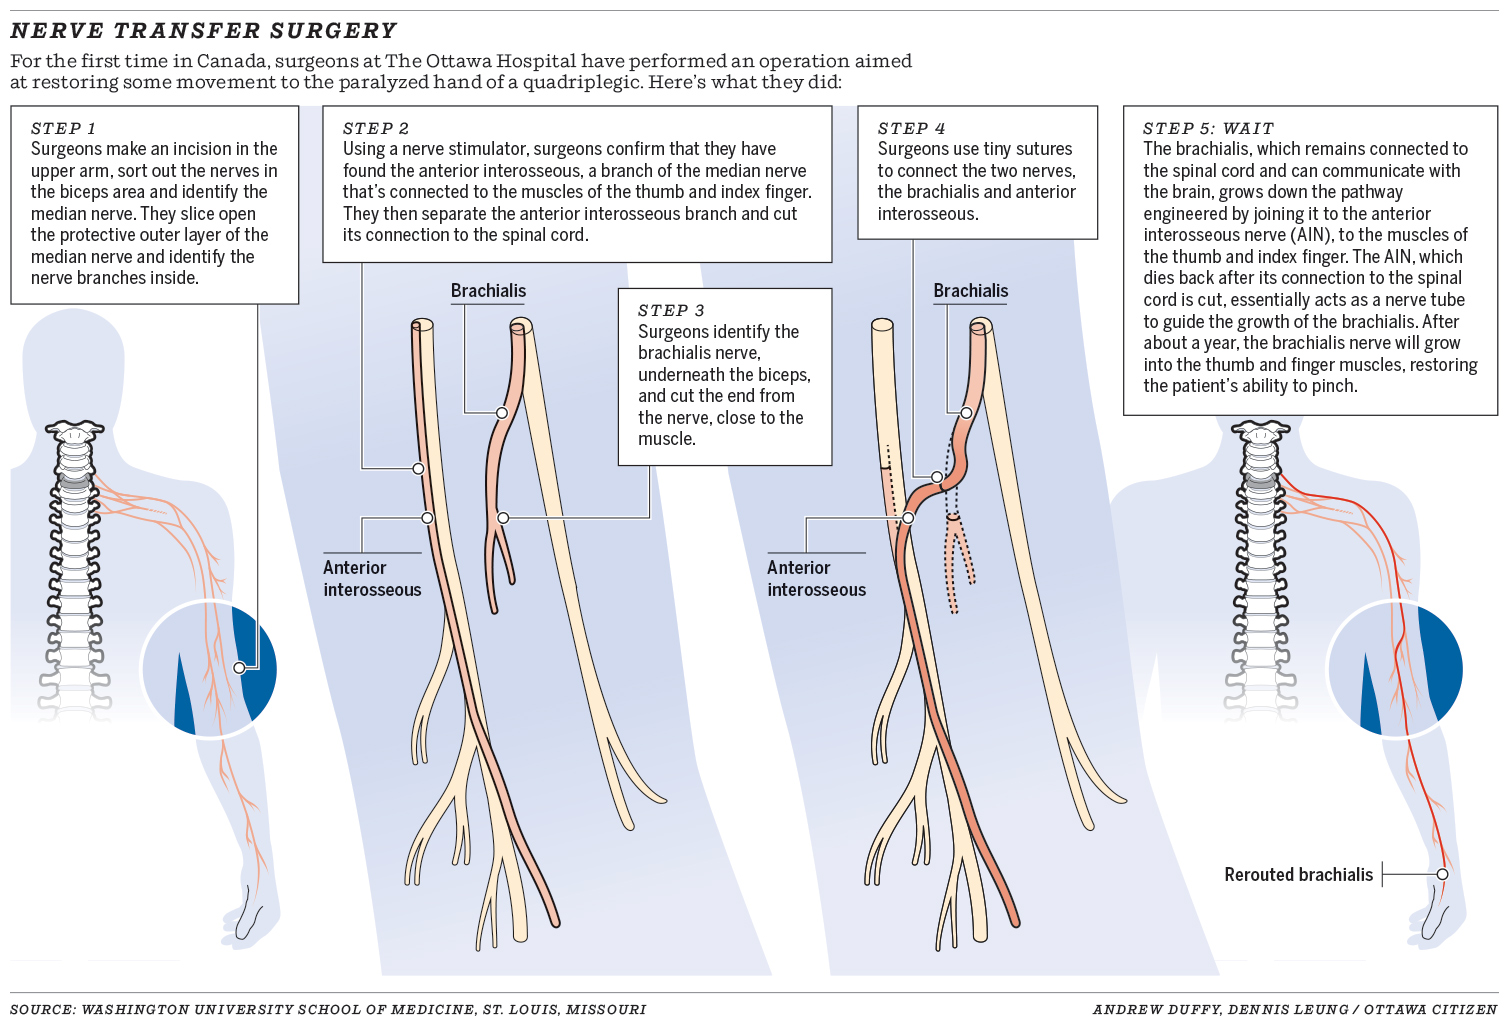 Qa Nerve Transfer Surgery Answers Spinal Cord Injury Zone Schematic Of The Electronic Muscle Stimulation Timer 0314